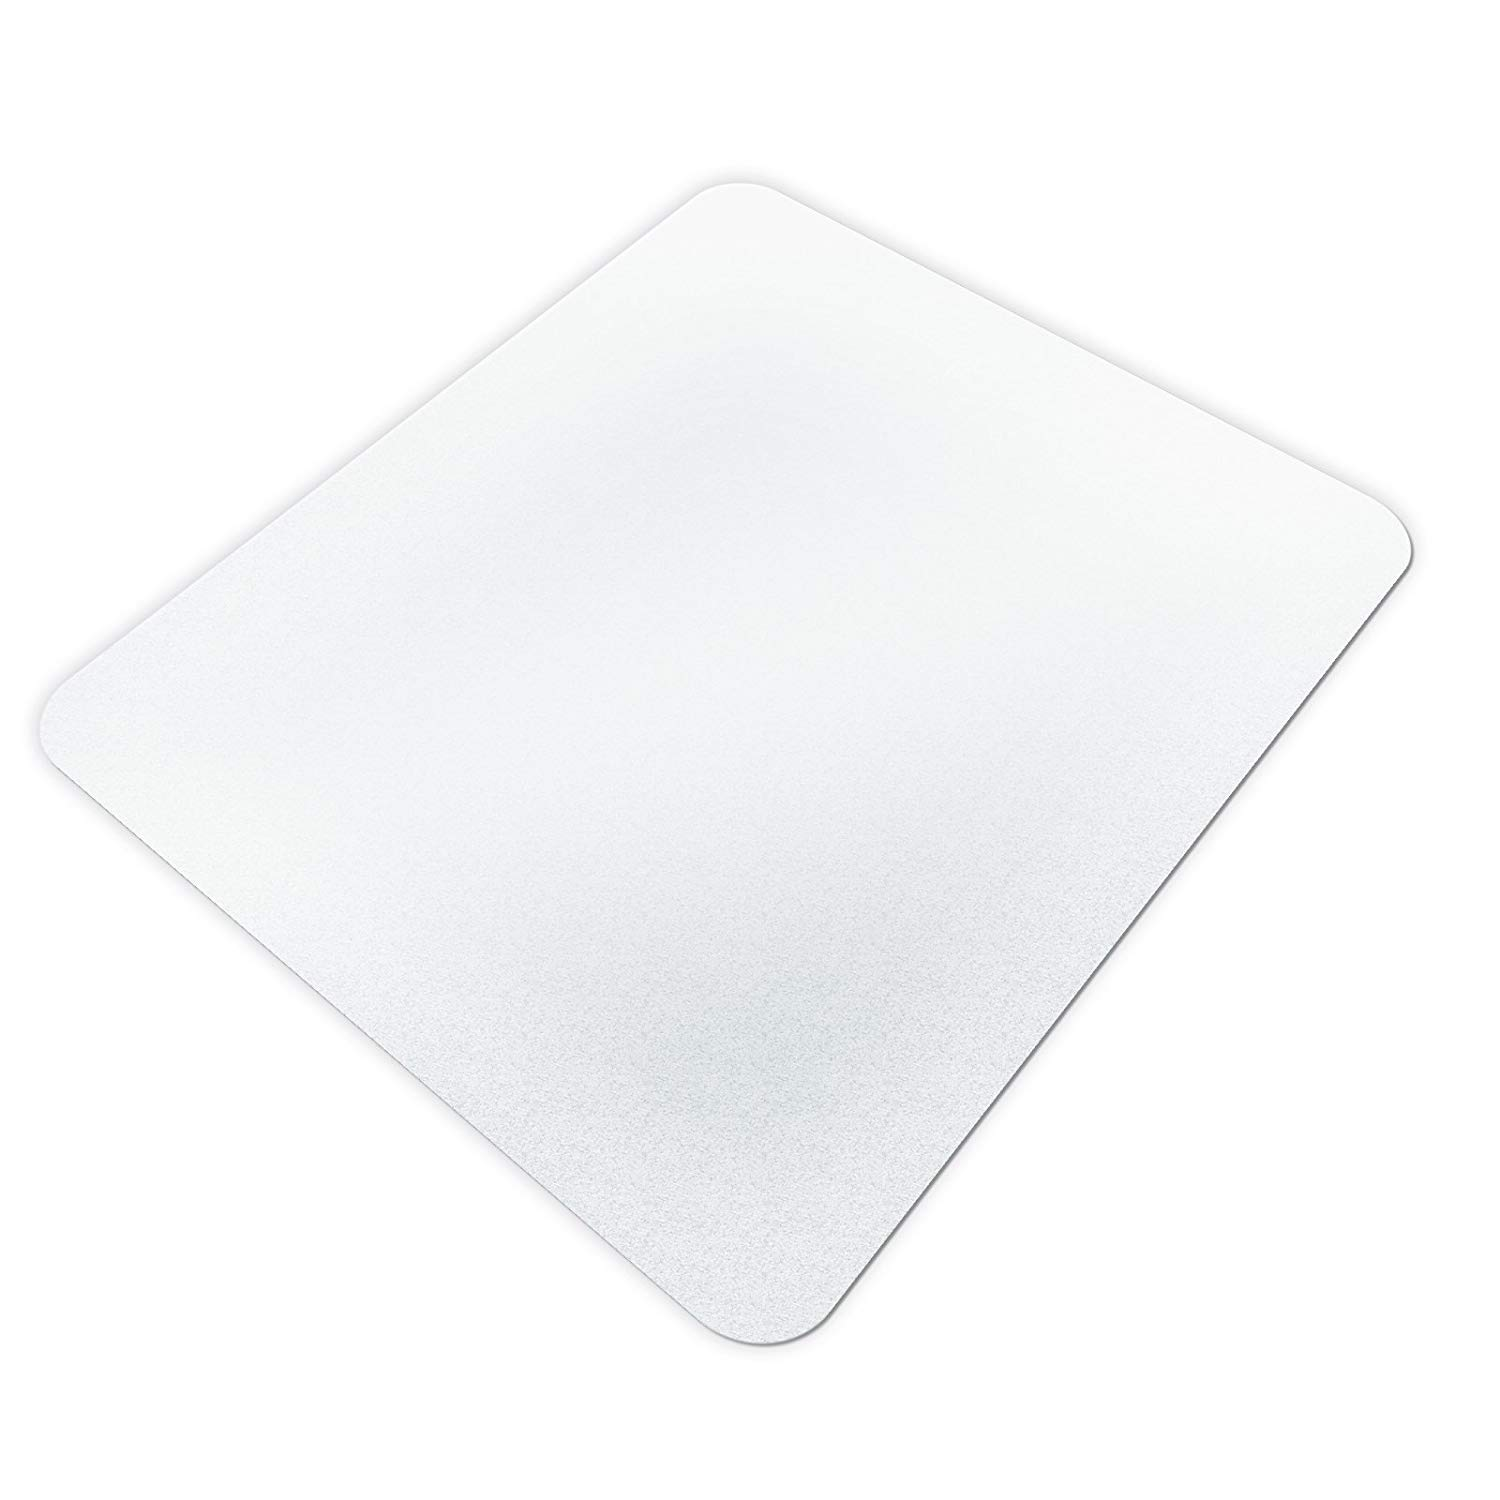 FloordirektPRO Office Chair Mat, 75x120cm - Over 10 Sizes Available | 100% Polycarbonate, Hard Floor Protection